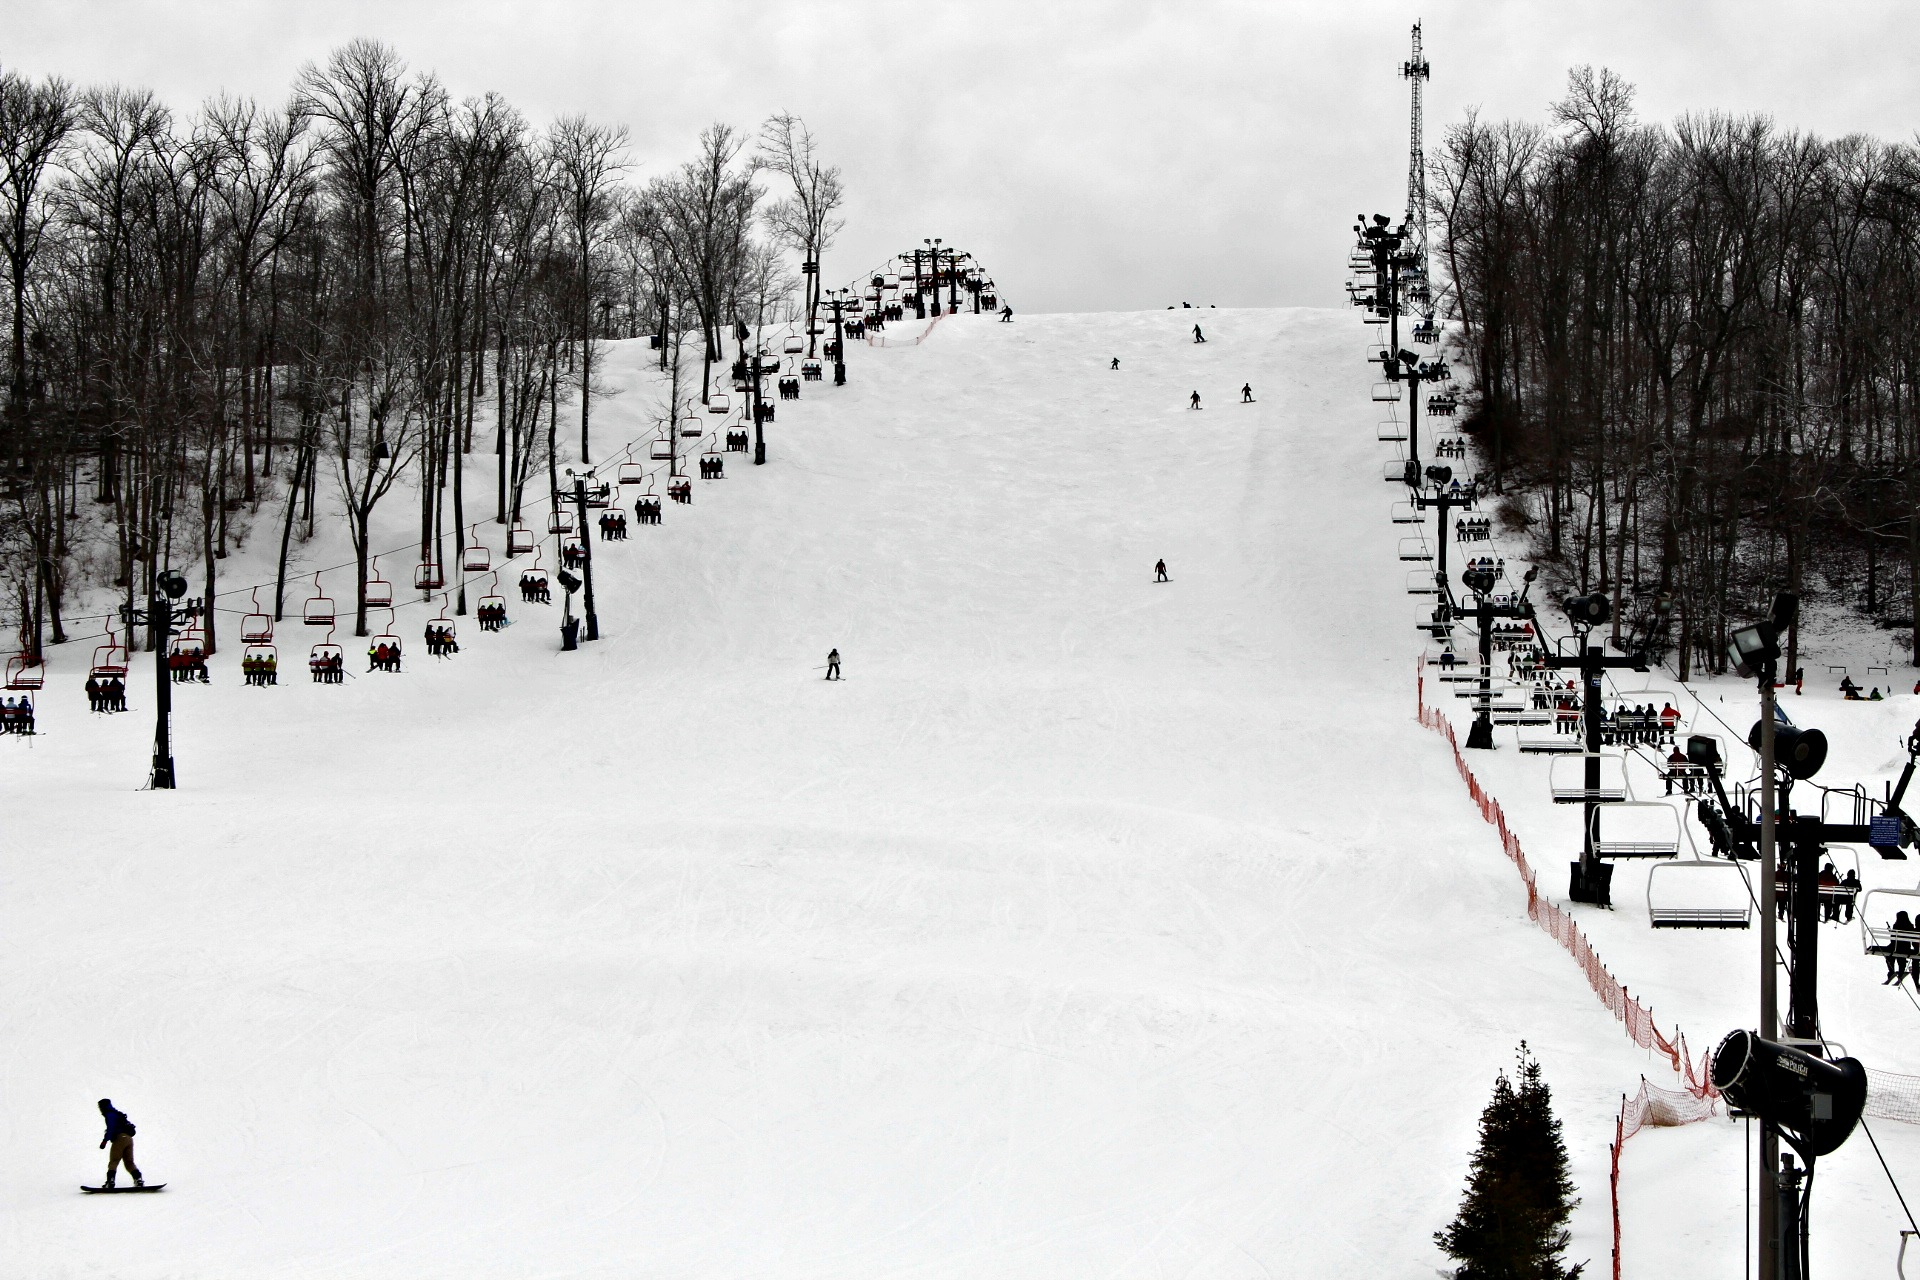 One of the many slopes at the ski resort.